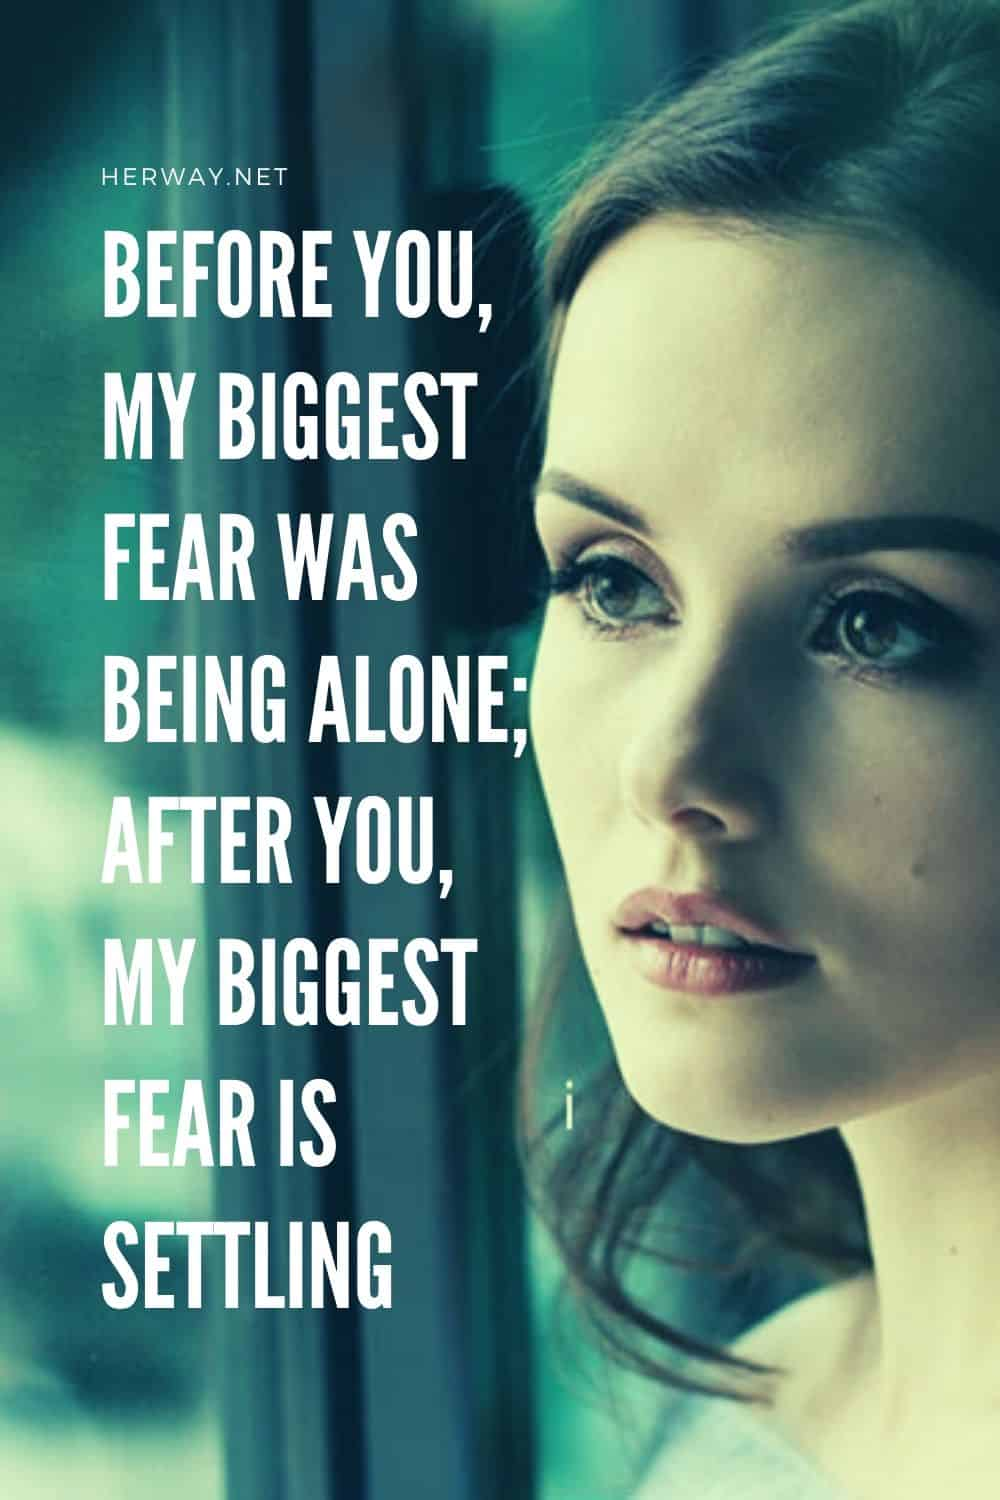 Before You, My Biggest Fear Was Being Alone; After You, My Biggest Fear Is Settling